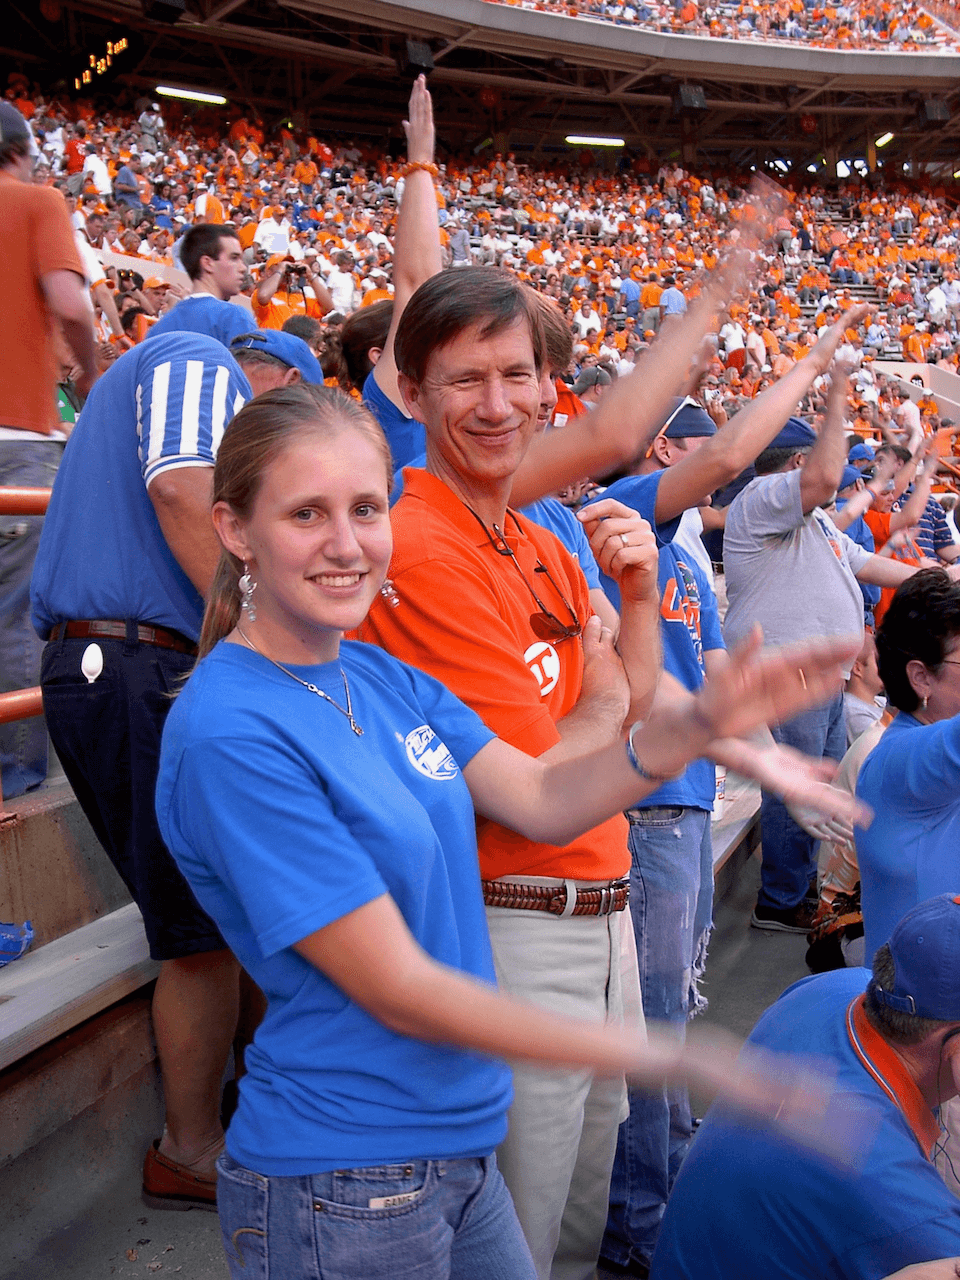 Lizzy Gator Chomping at Tennessee game photo by Kathy Miller